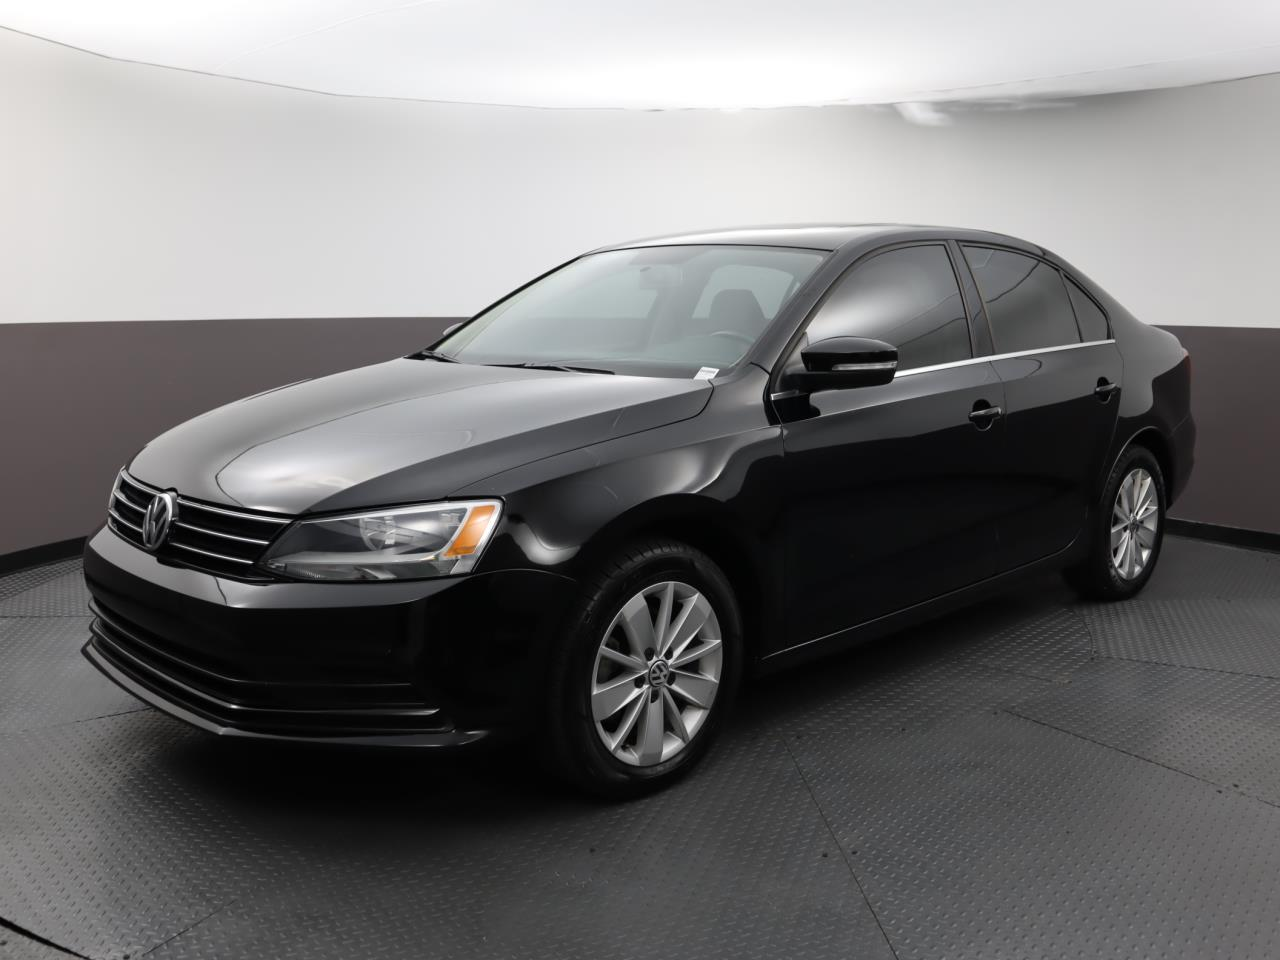 Used VOLKSWAGEN JETTA 2016 WEST PALM 1.4T SE W/CONNECTIVITY